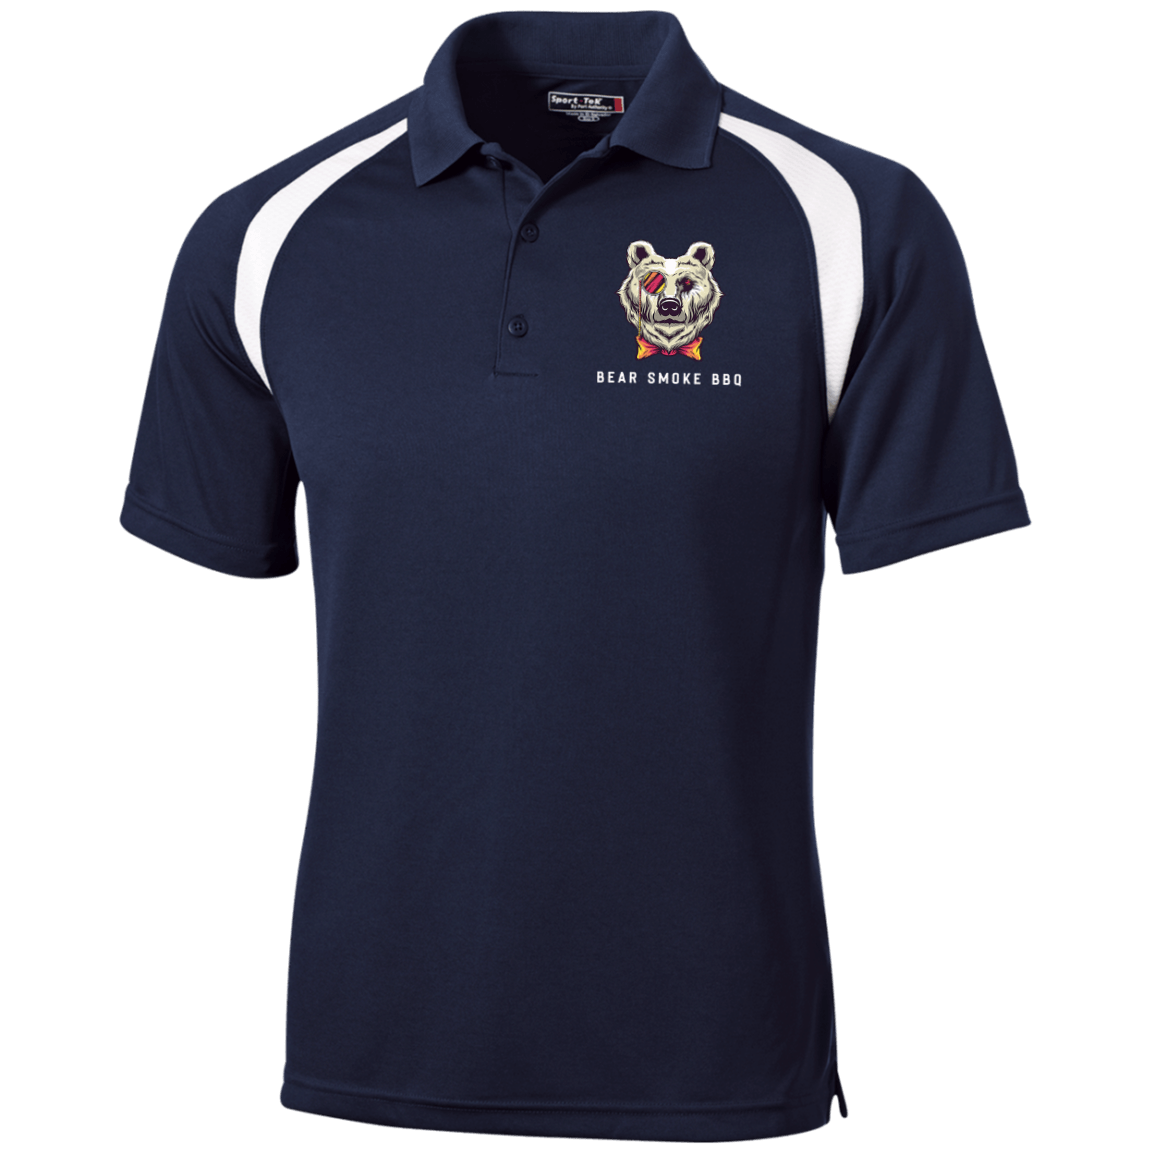 T476 Moisture-Wicking Tag-Free Golf Shirt - Bear Smoke BBQ